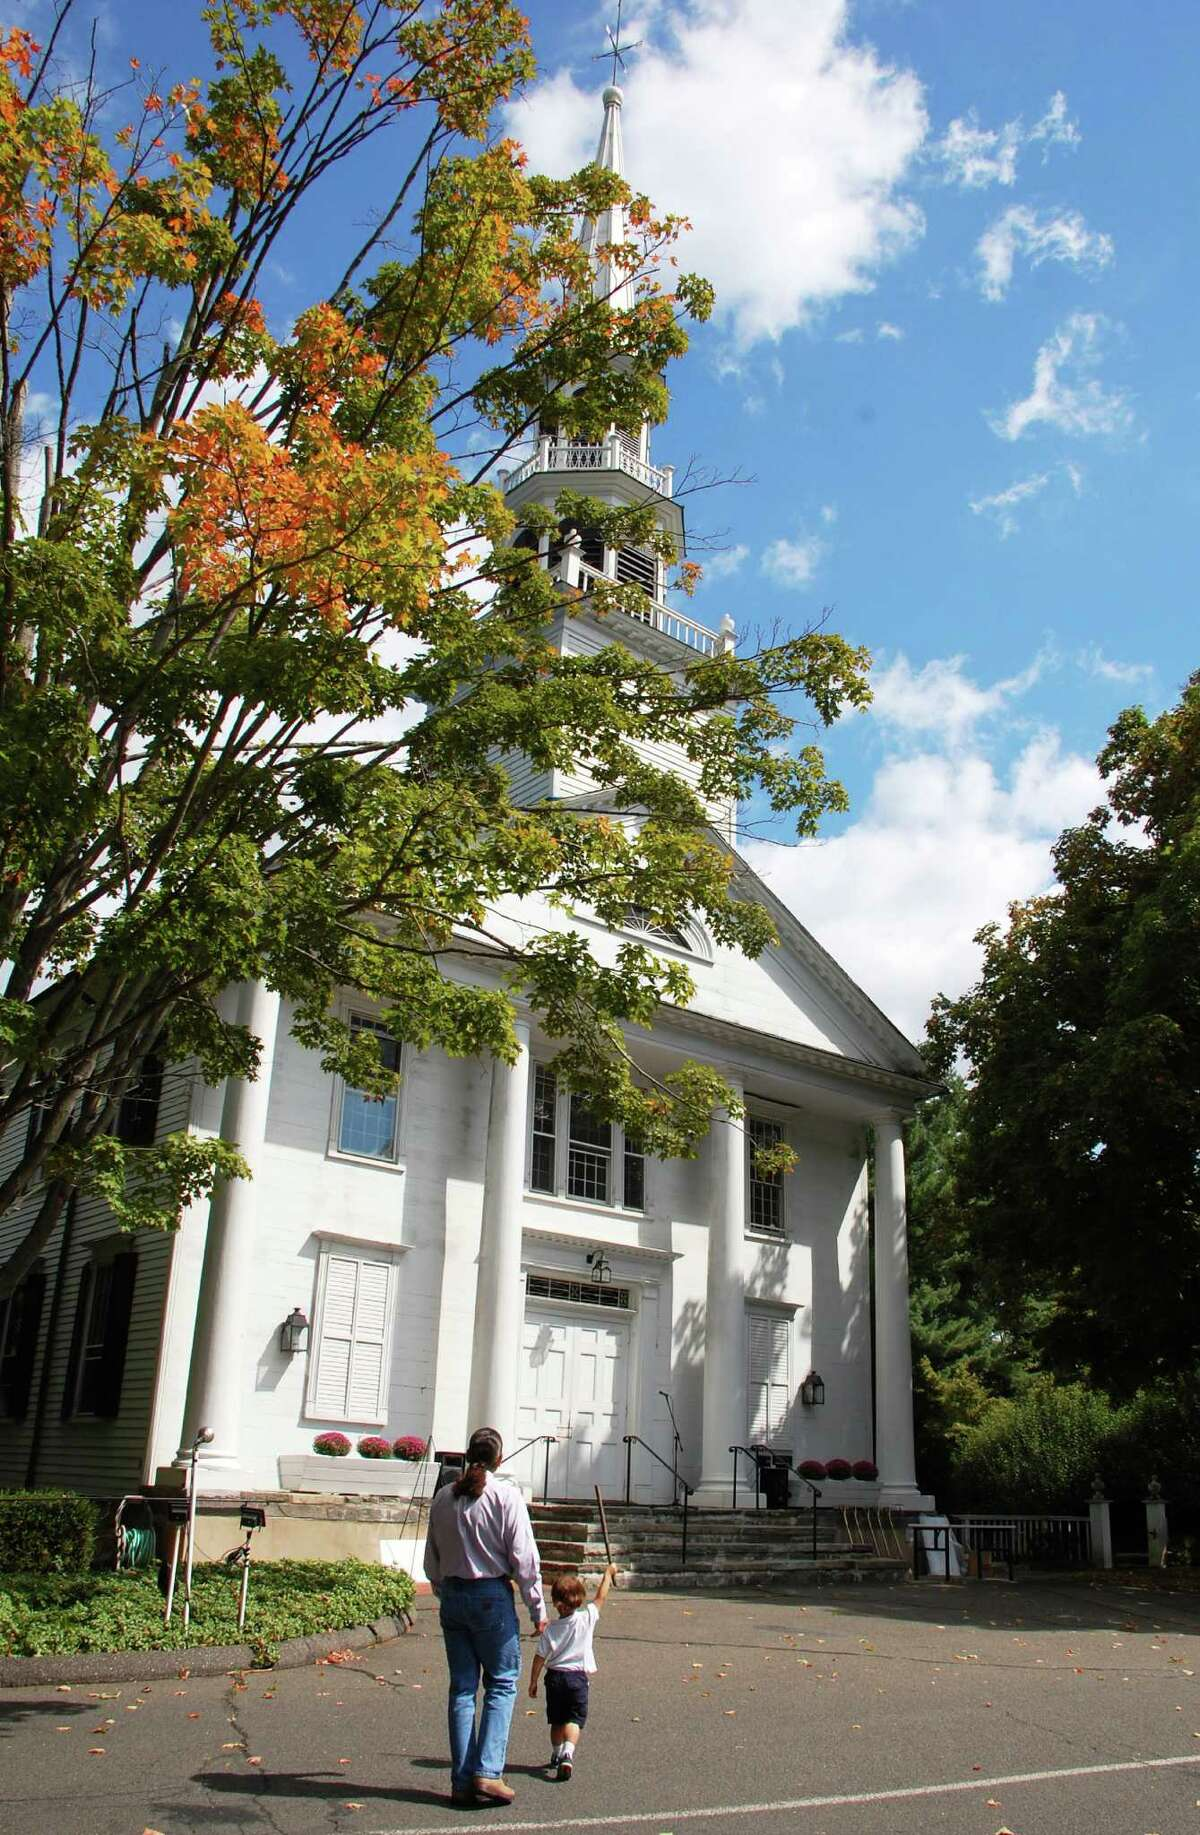 A ceremony Sunday marked the start of reconstruction at Saugatuck Congregational Church, which has not been in use since November 2011 when a large fire destroyed the rear portion of the church complex.